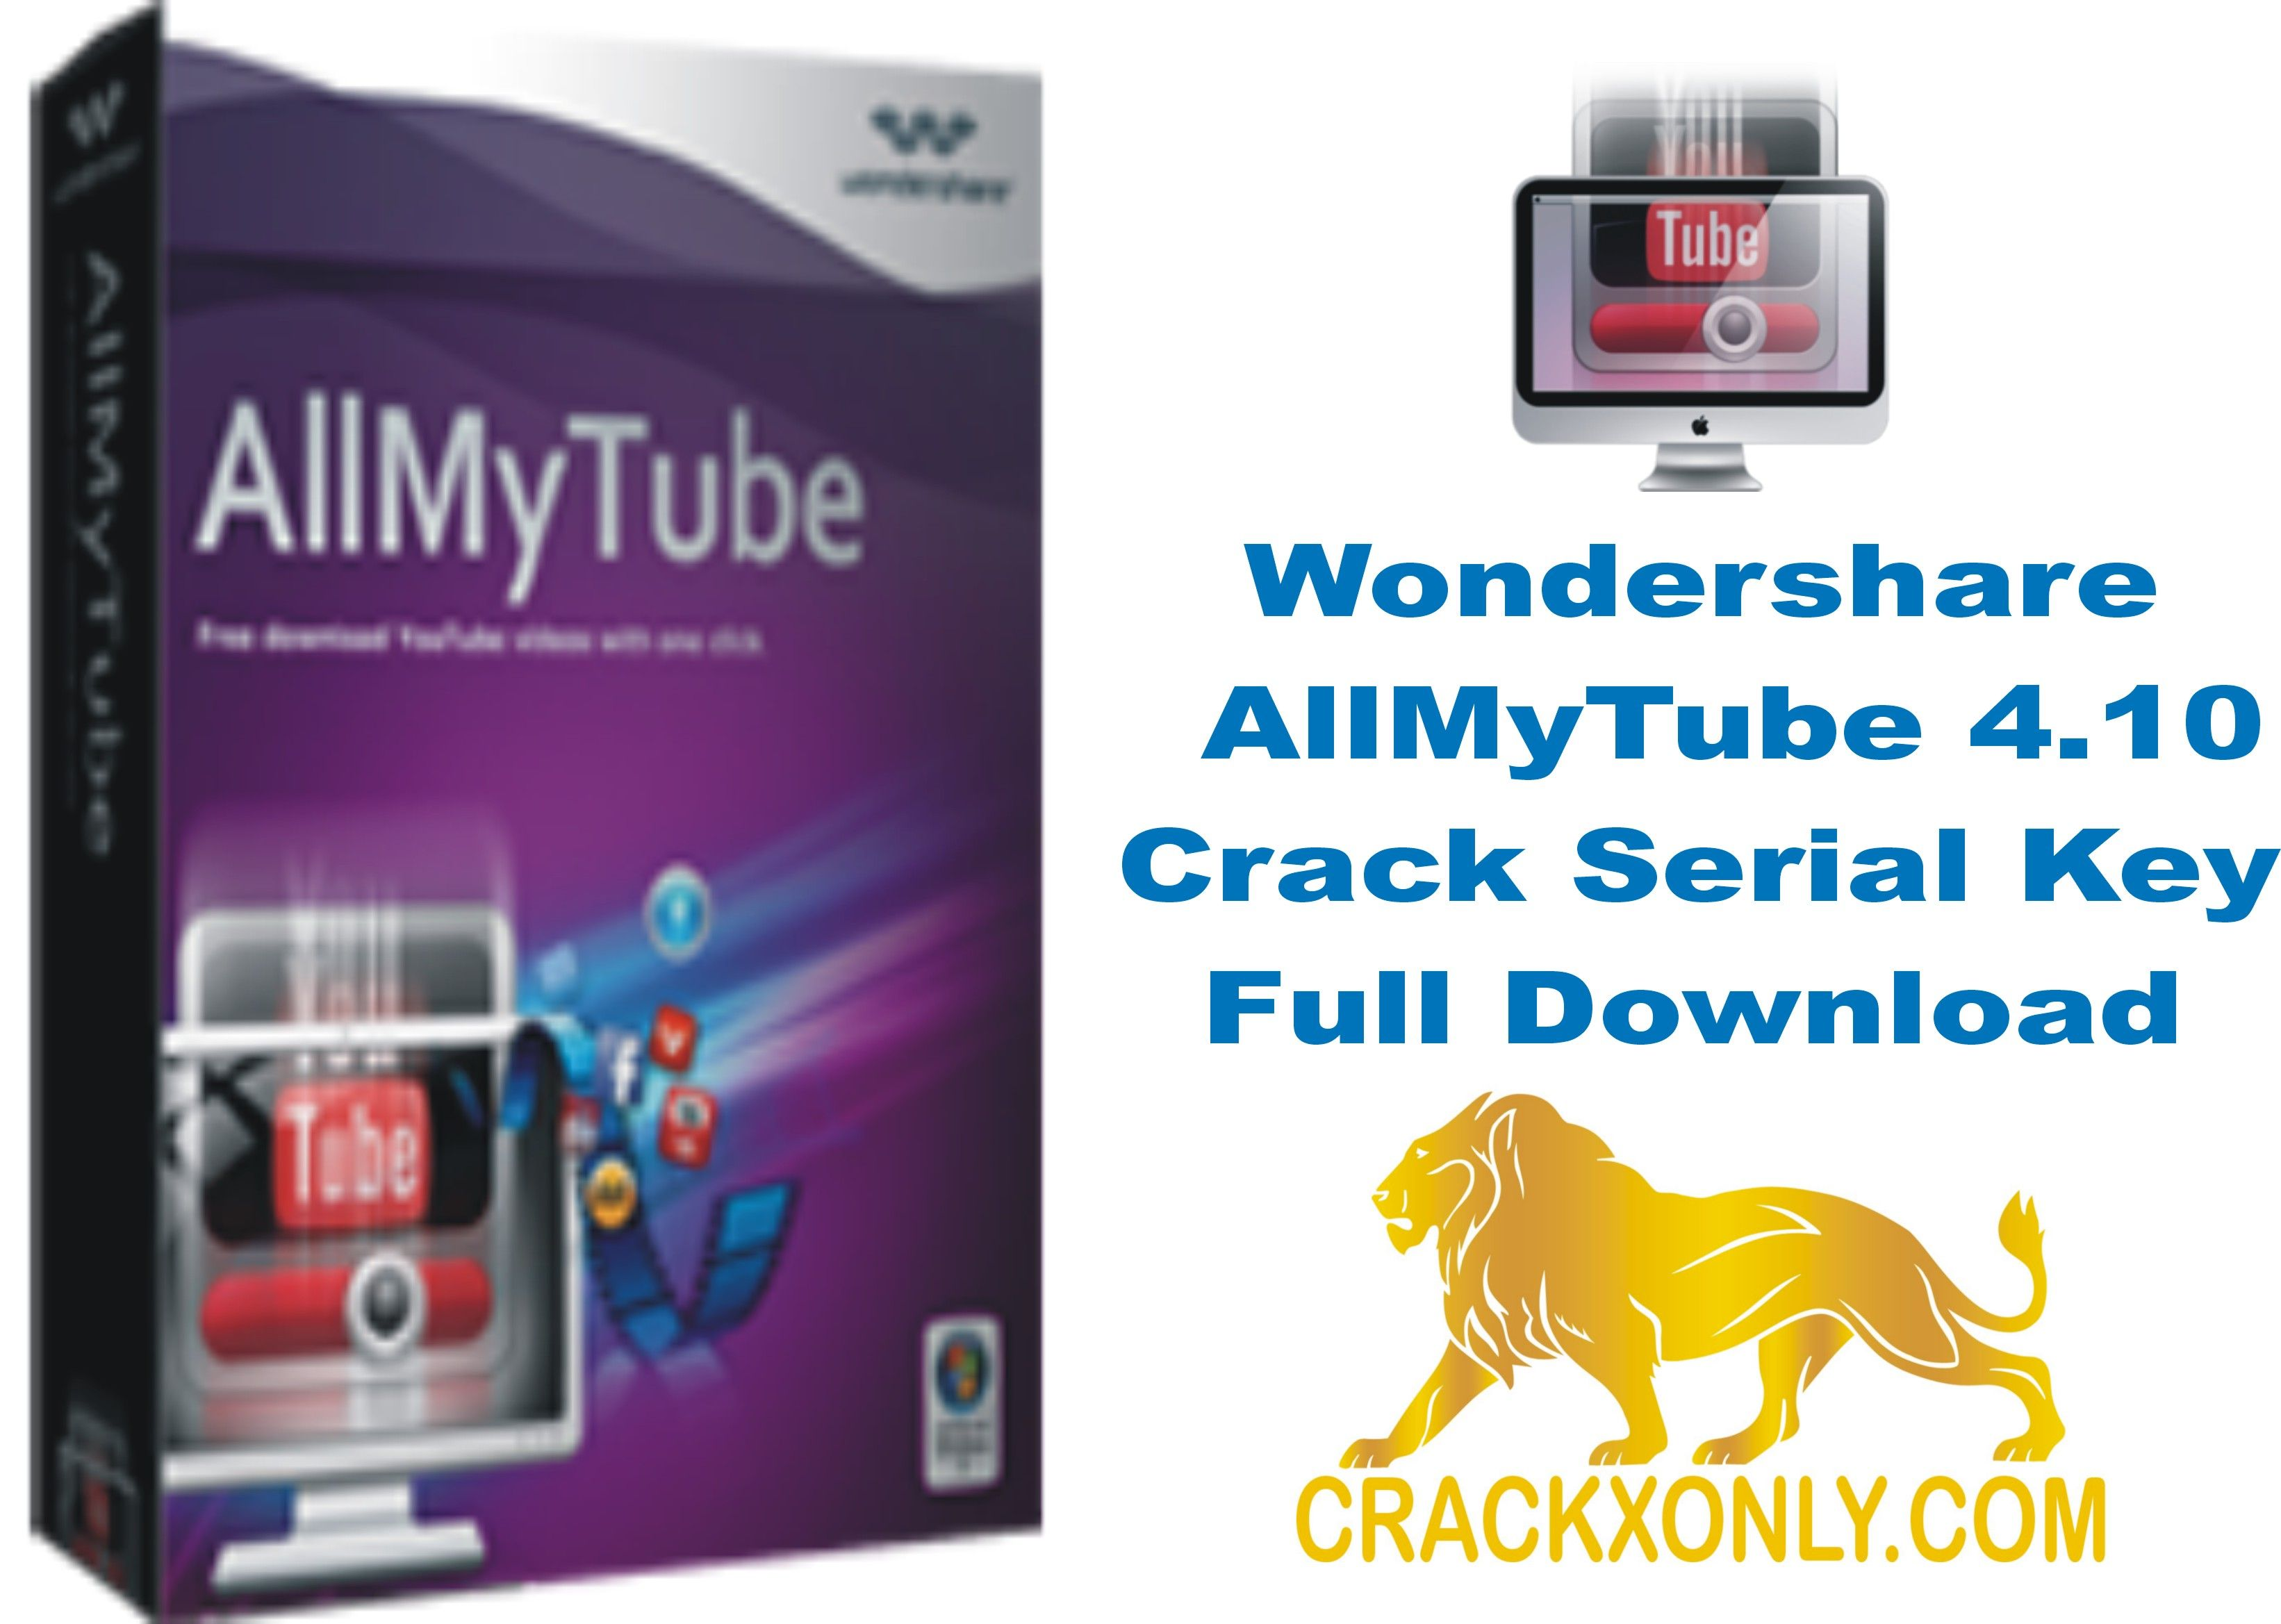 Wondershare AllMyTube 4 10 Crack Serial Key Full Download Wondershare AllMyTube 4 10 Crack Full Serial Key